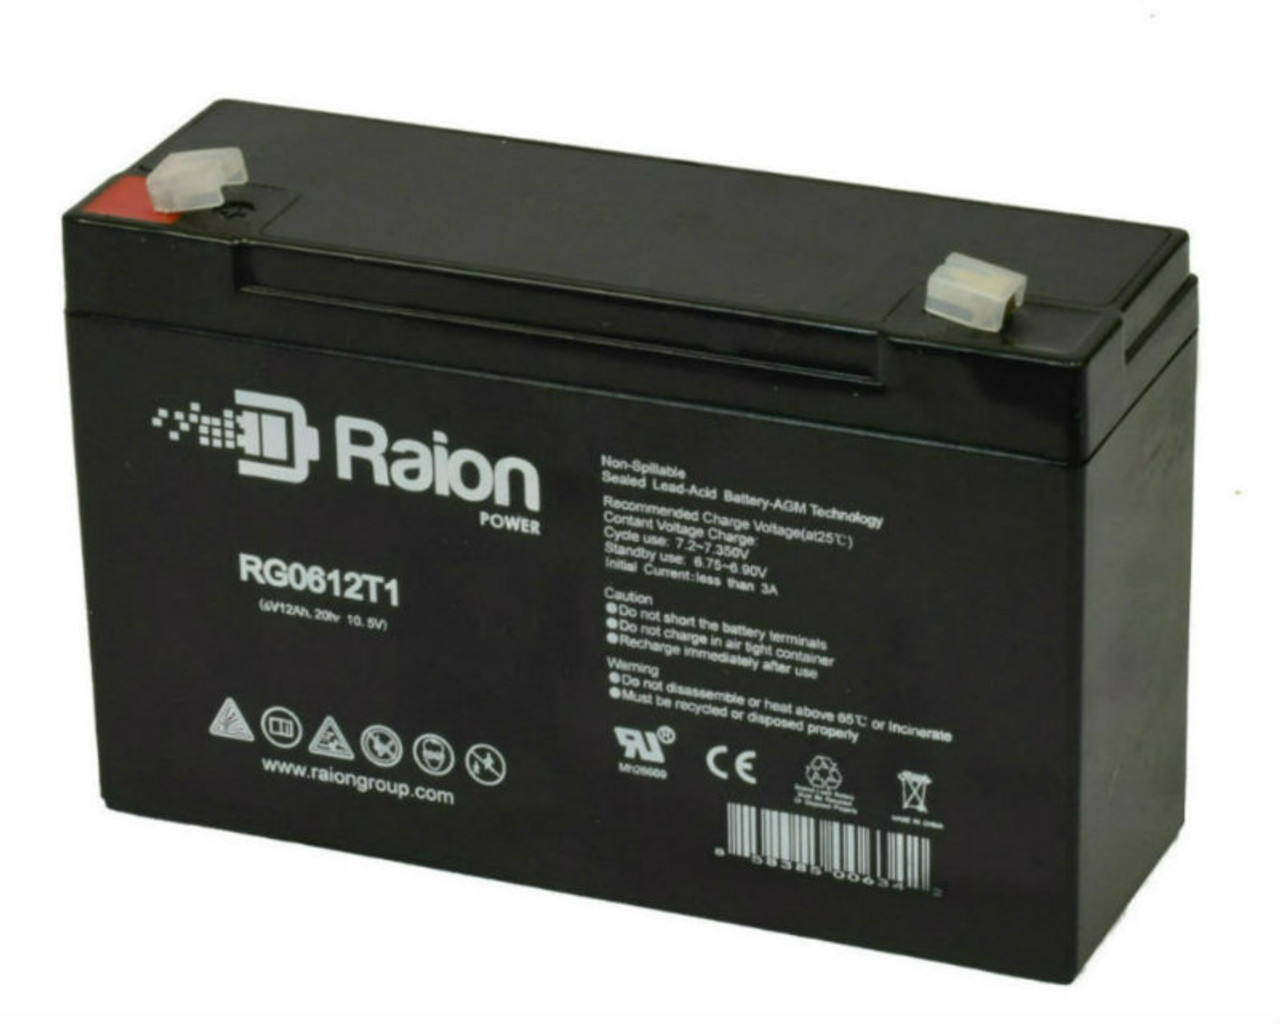 Raion Power RG06120T1 Replacement Battery Pack for Mule LX emergency light